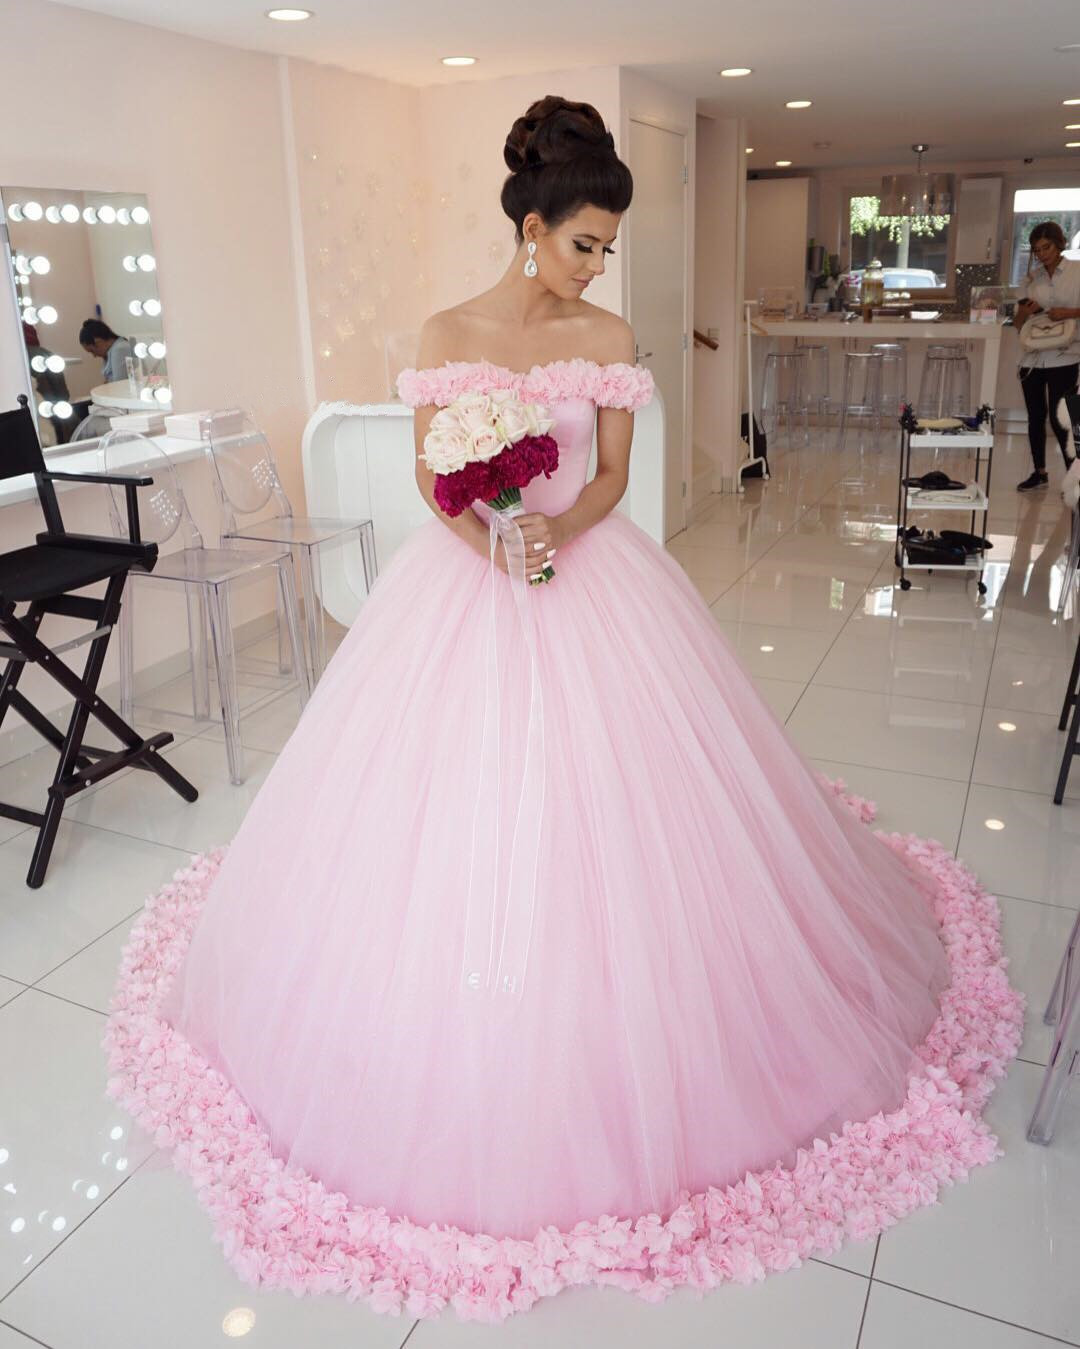 Pink wedding dress princess wedding dress elegant wedding dress pink wedding dress princess wedding dress elegant wedding dress soft tulle wedding dress handmade flowers wedding dress gorgeous wedding dress ombrellifo Gallery